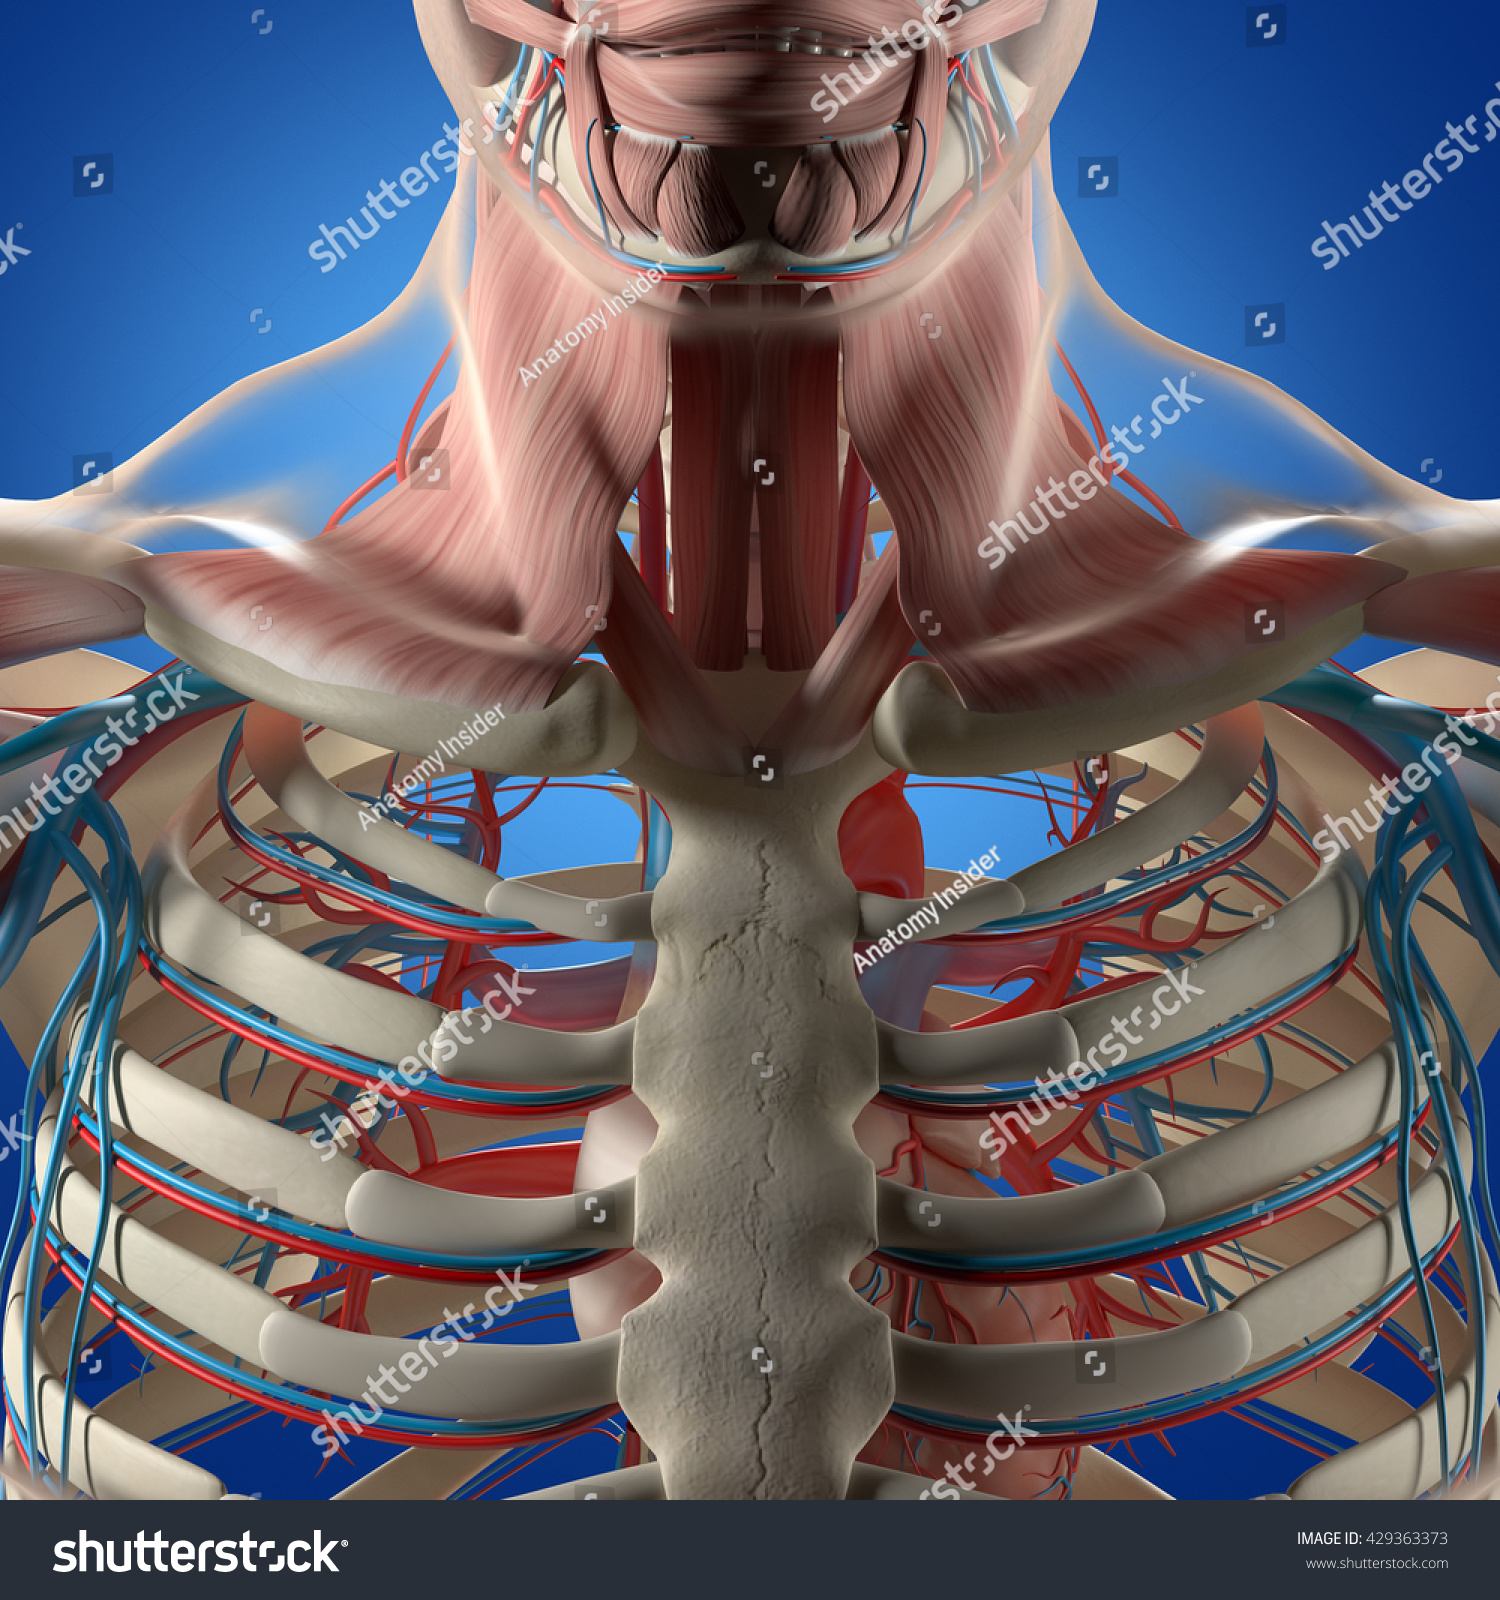 Human Anatomy Torso Rib Cage Muscle Stockillustration 429363373